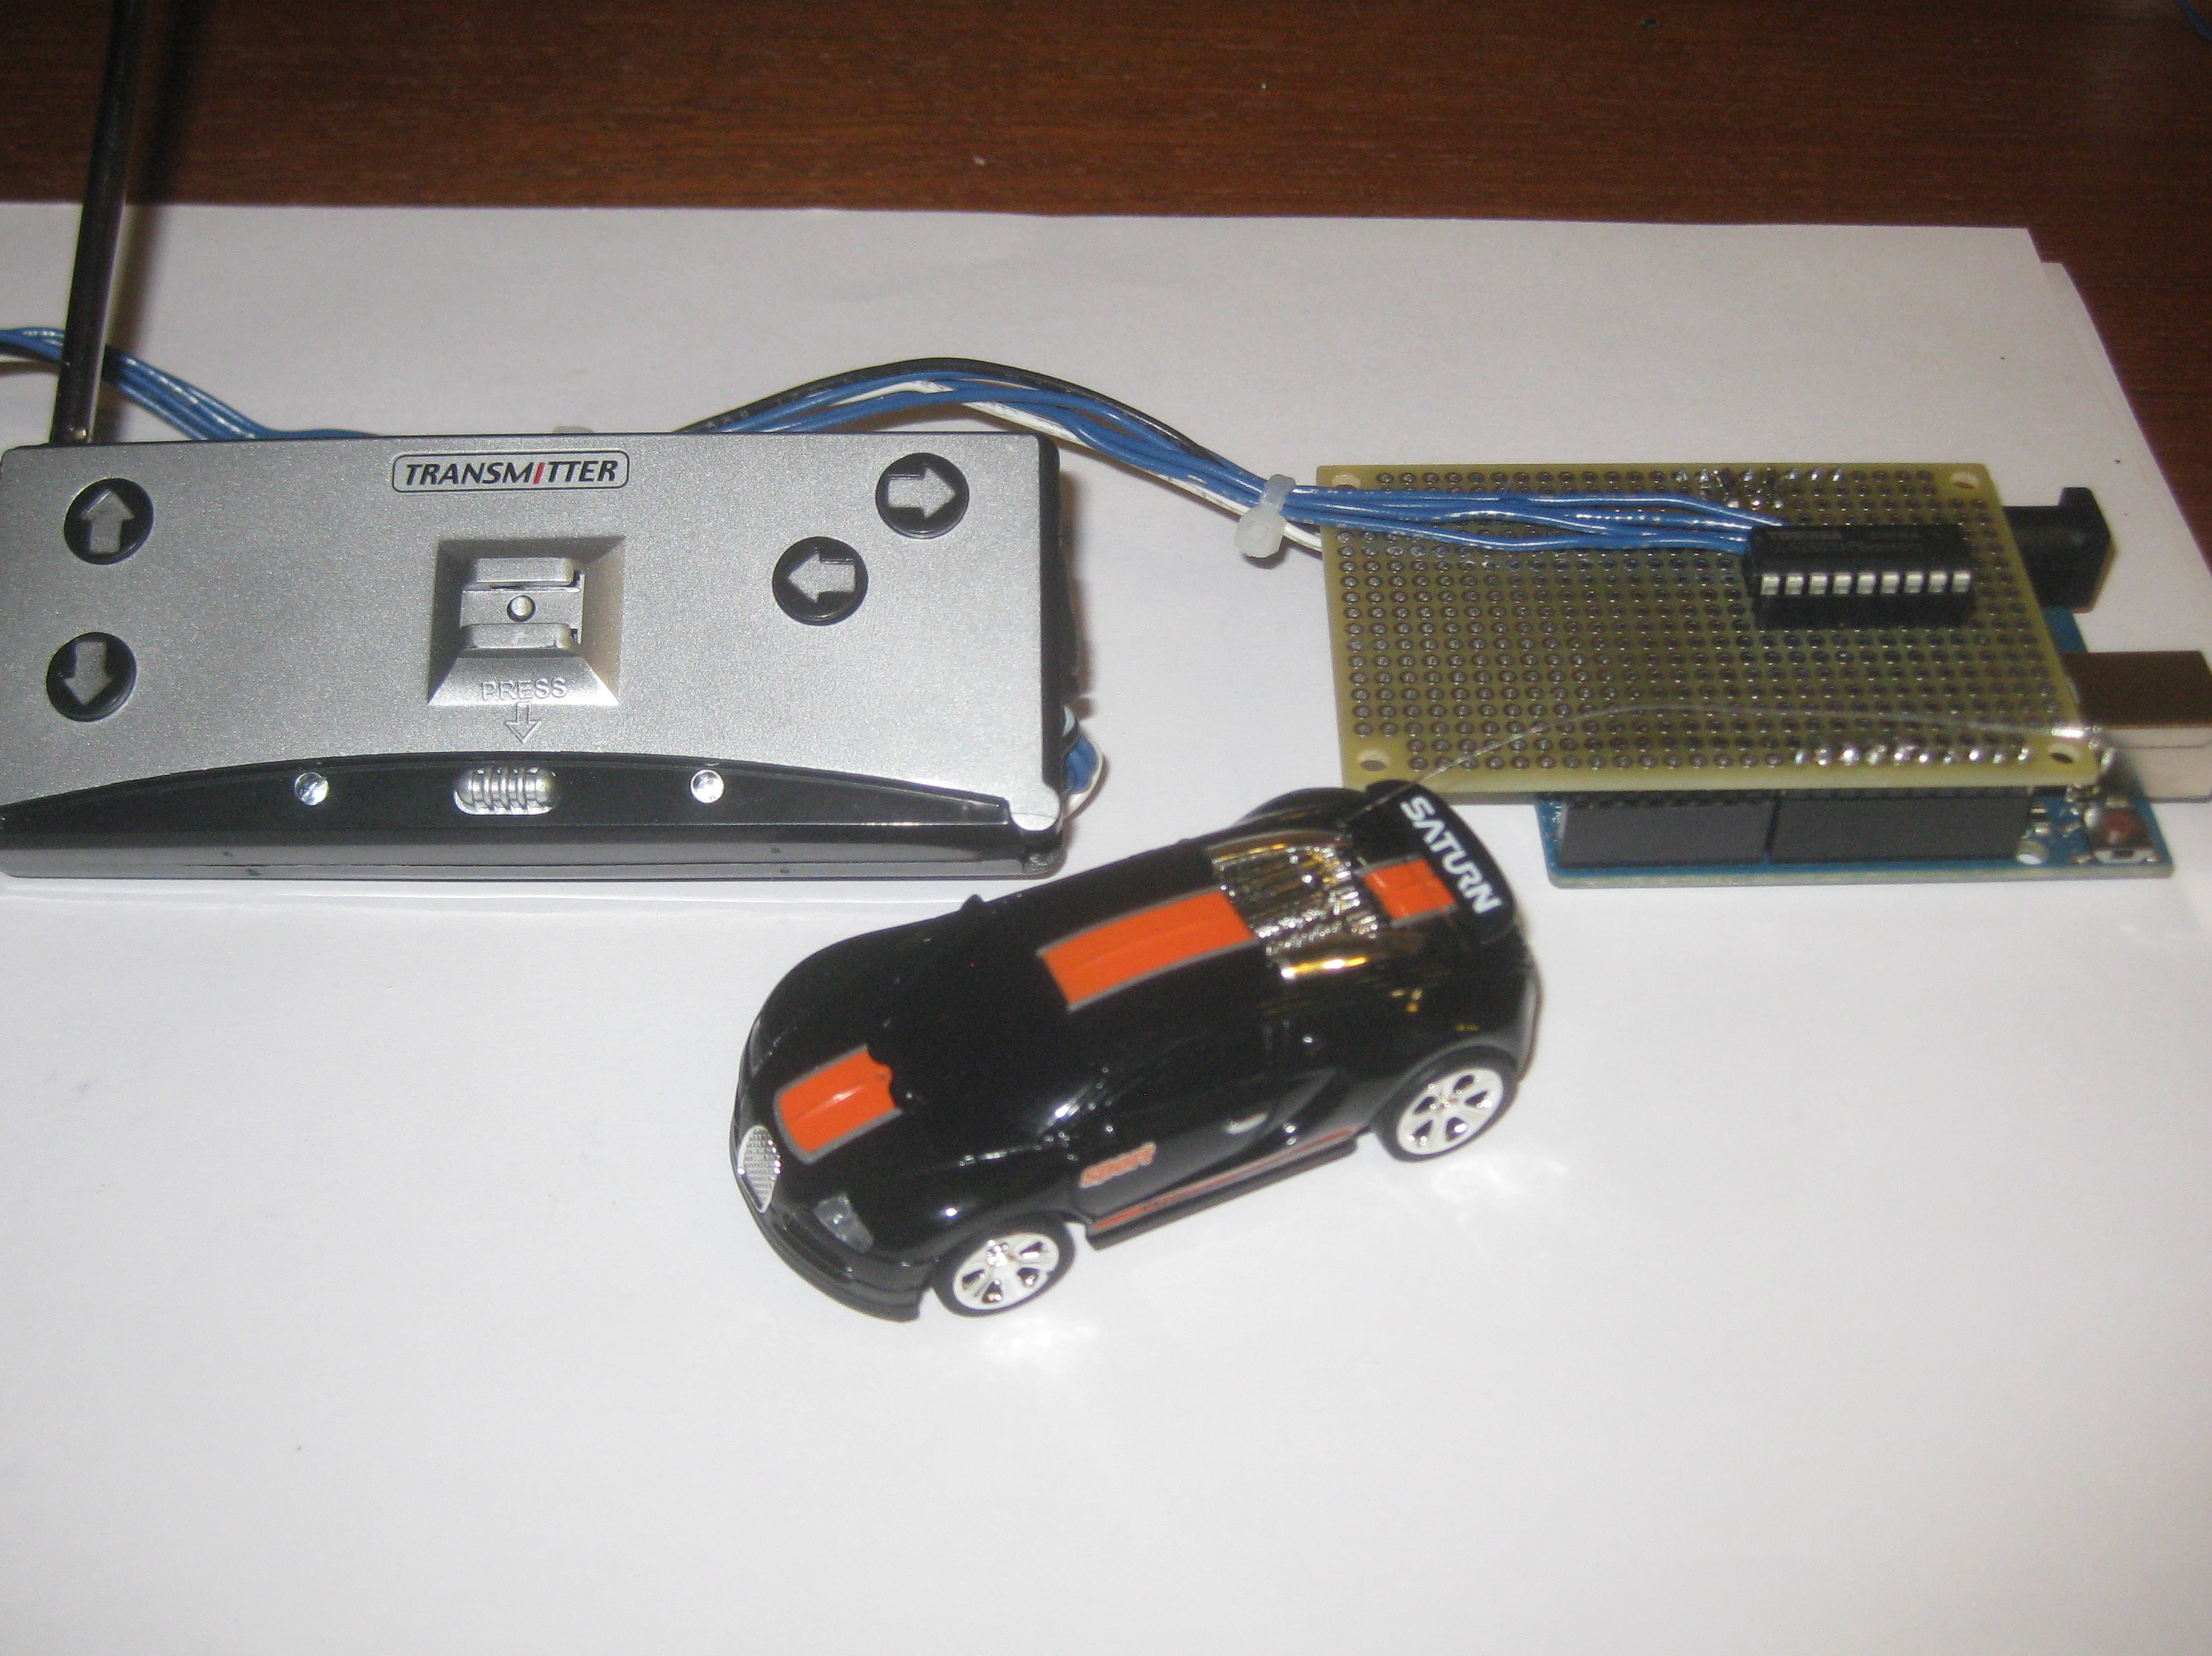 Programmable Rc Car How To Guide Electronics Project Make A Remote Control Plugged In Connector Fully Assembled Shield And